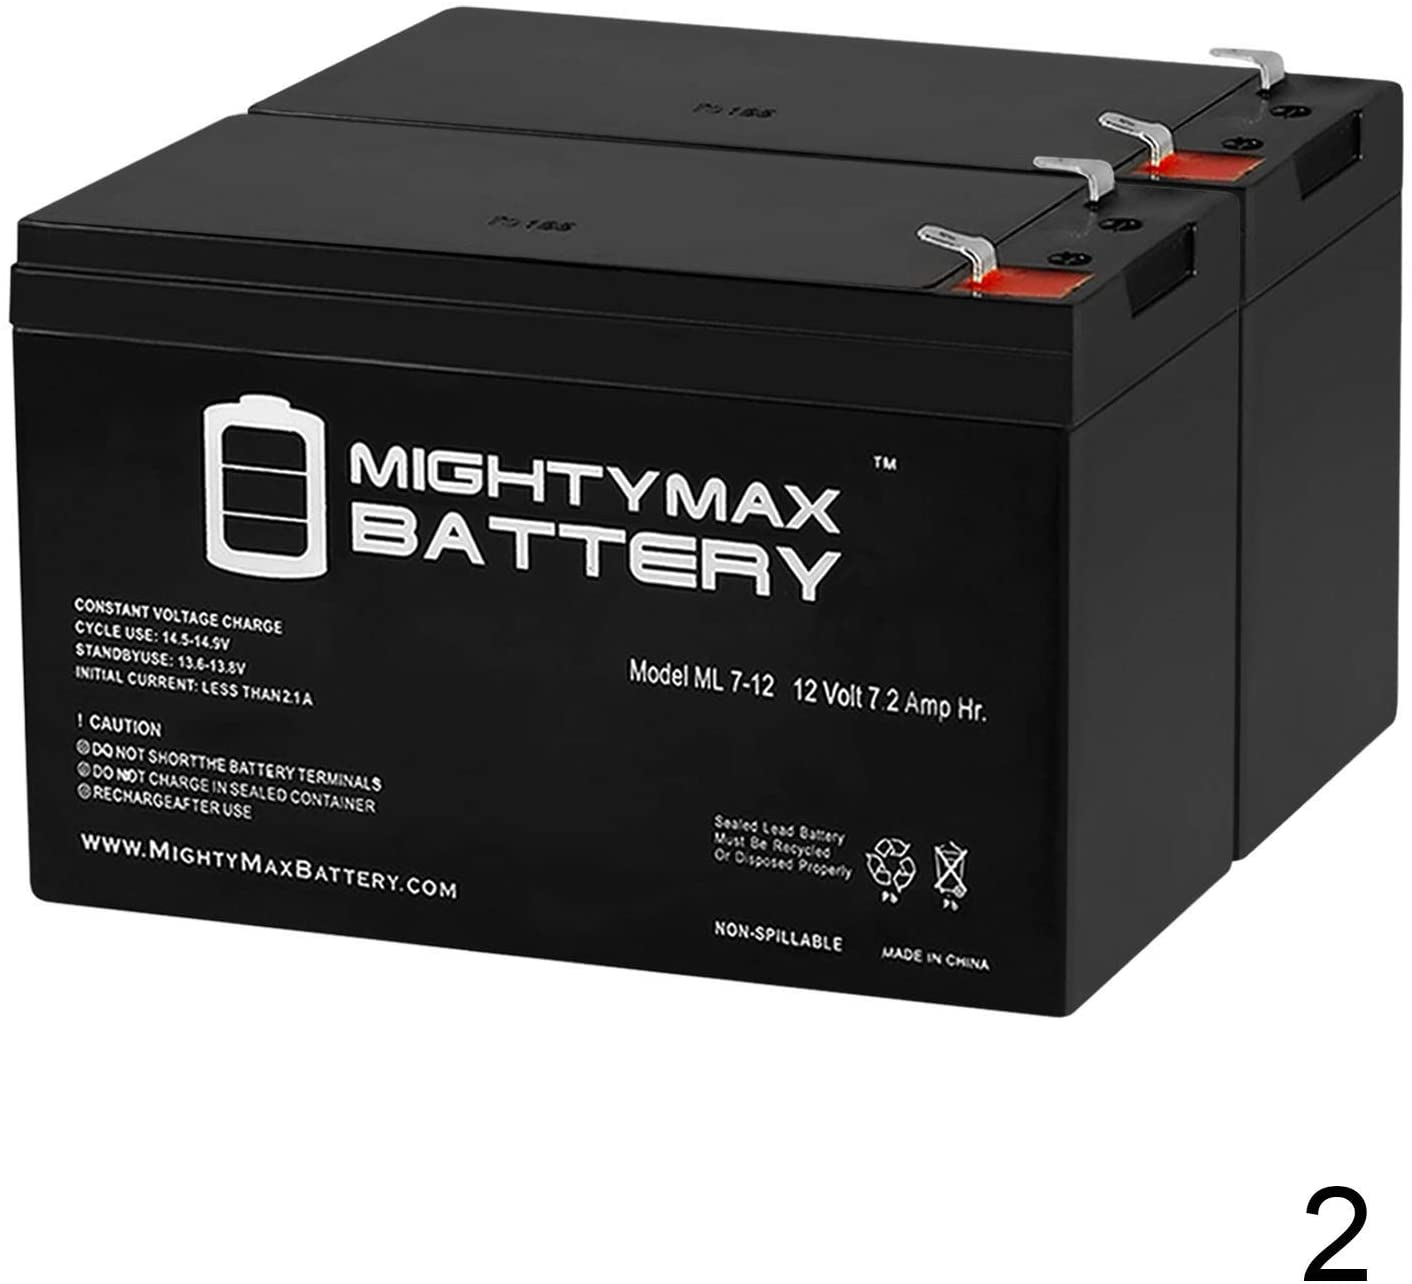 Mighty Max Battery Battery Razor Mini Chopper C300 12V 7AH - 2 Pack Brand Product